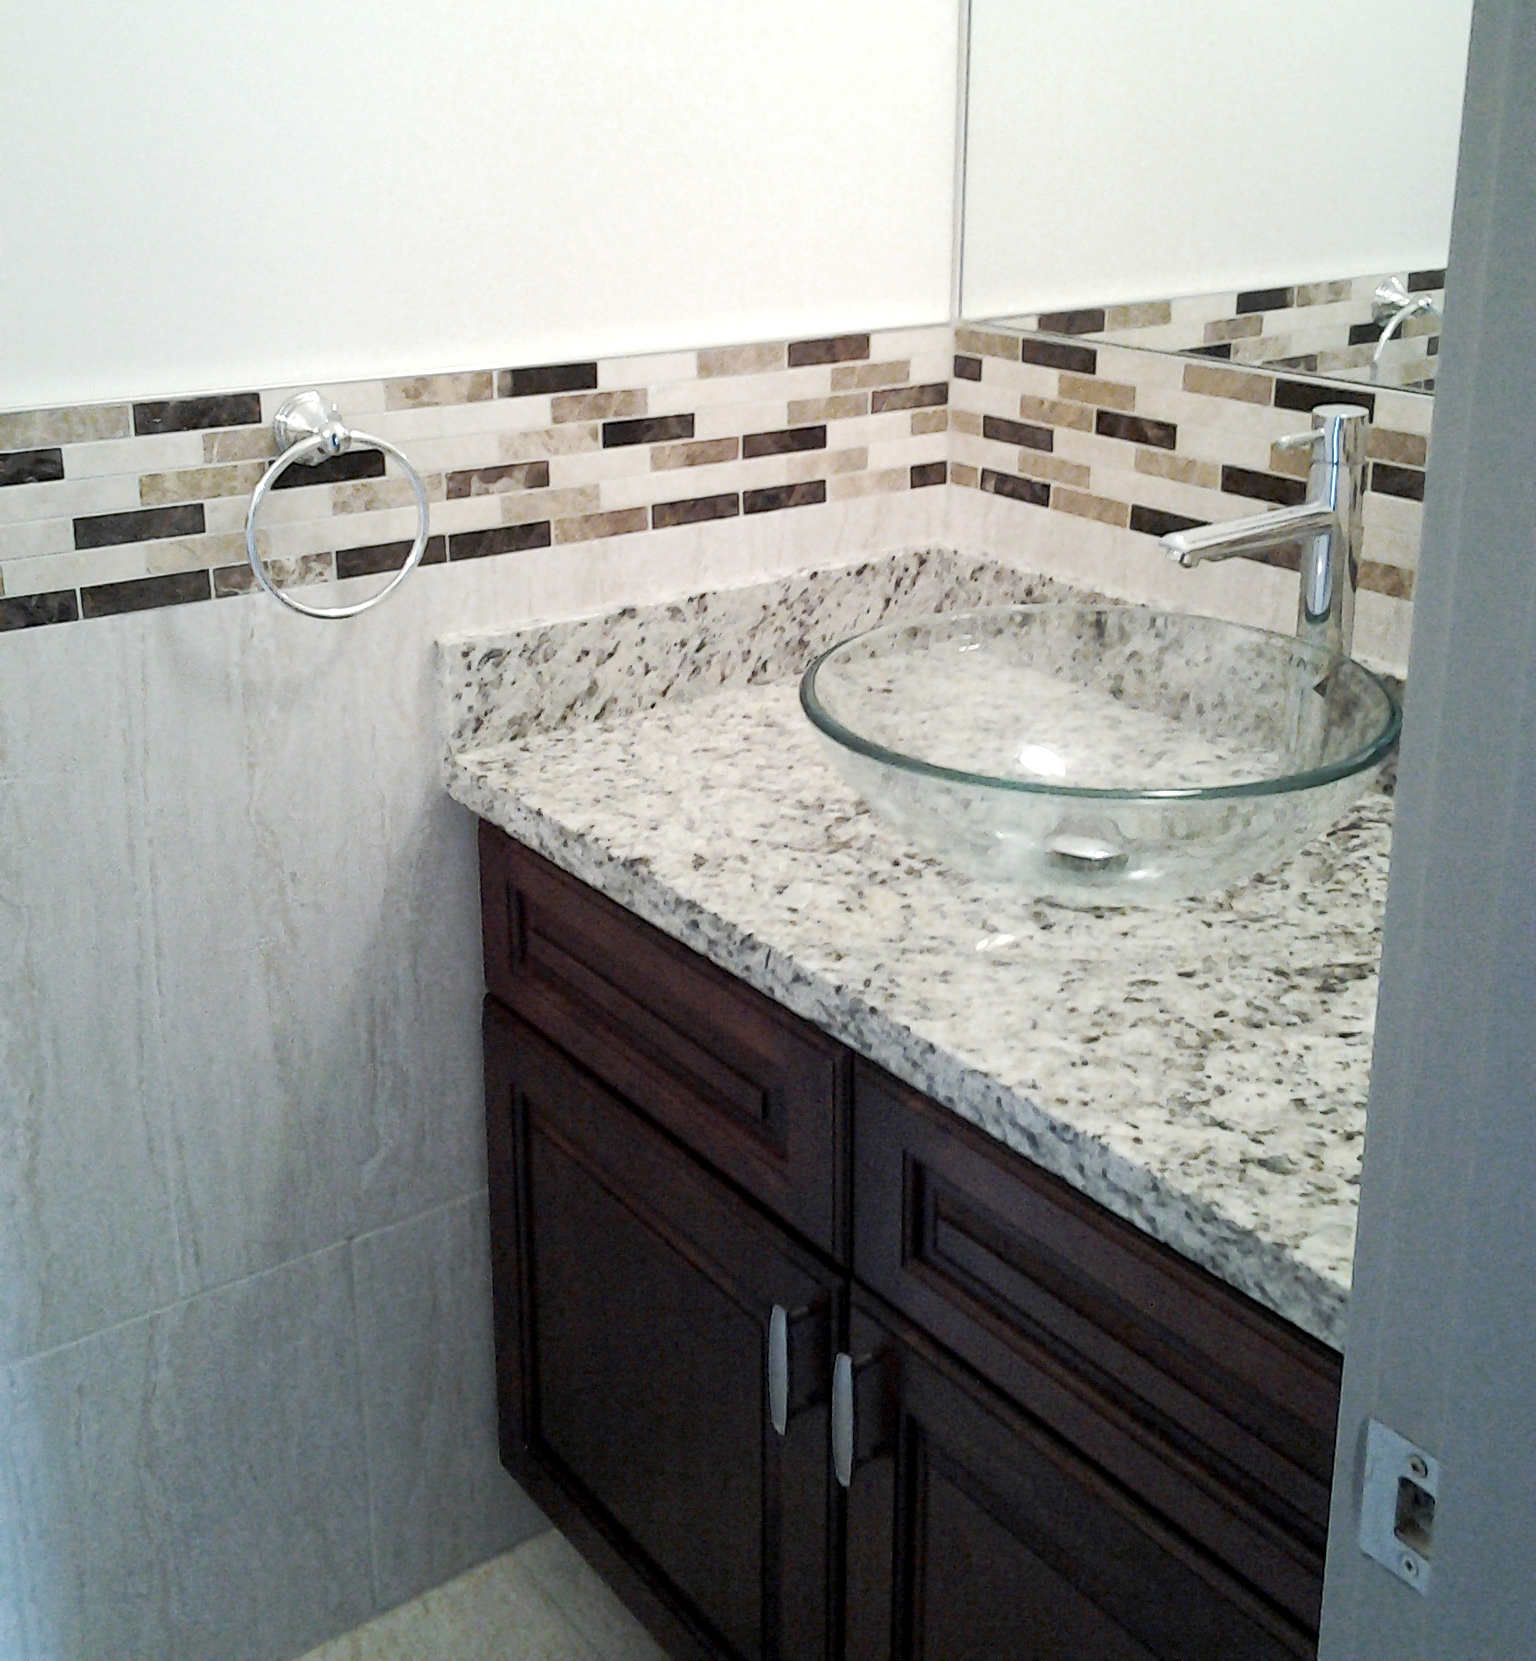 Professional Bathroom Renovations In Vancouver - Bathroom remodel vancouver bc